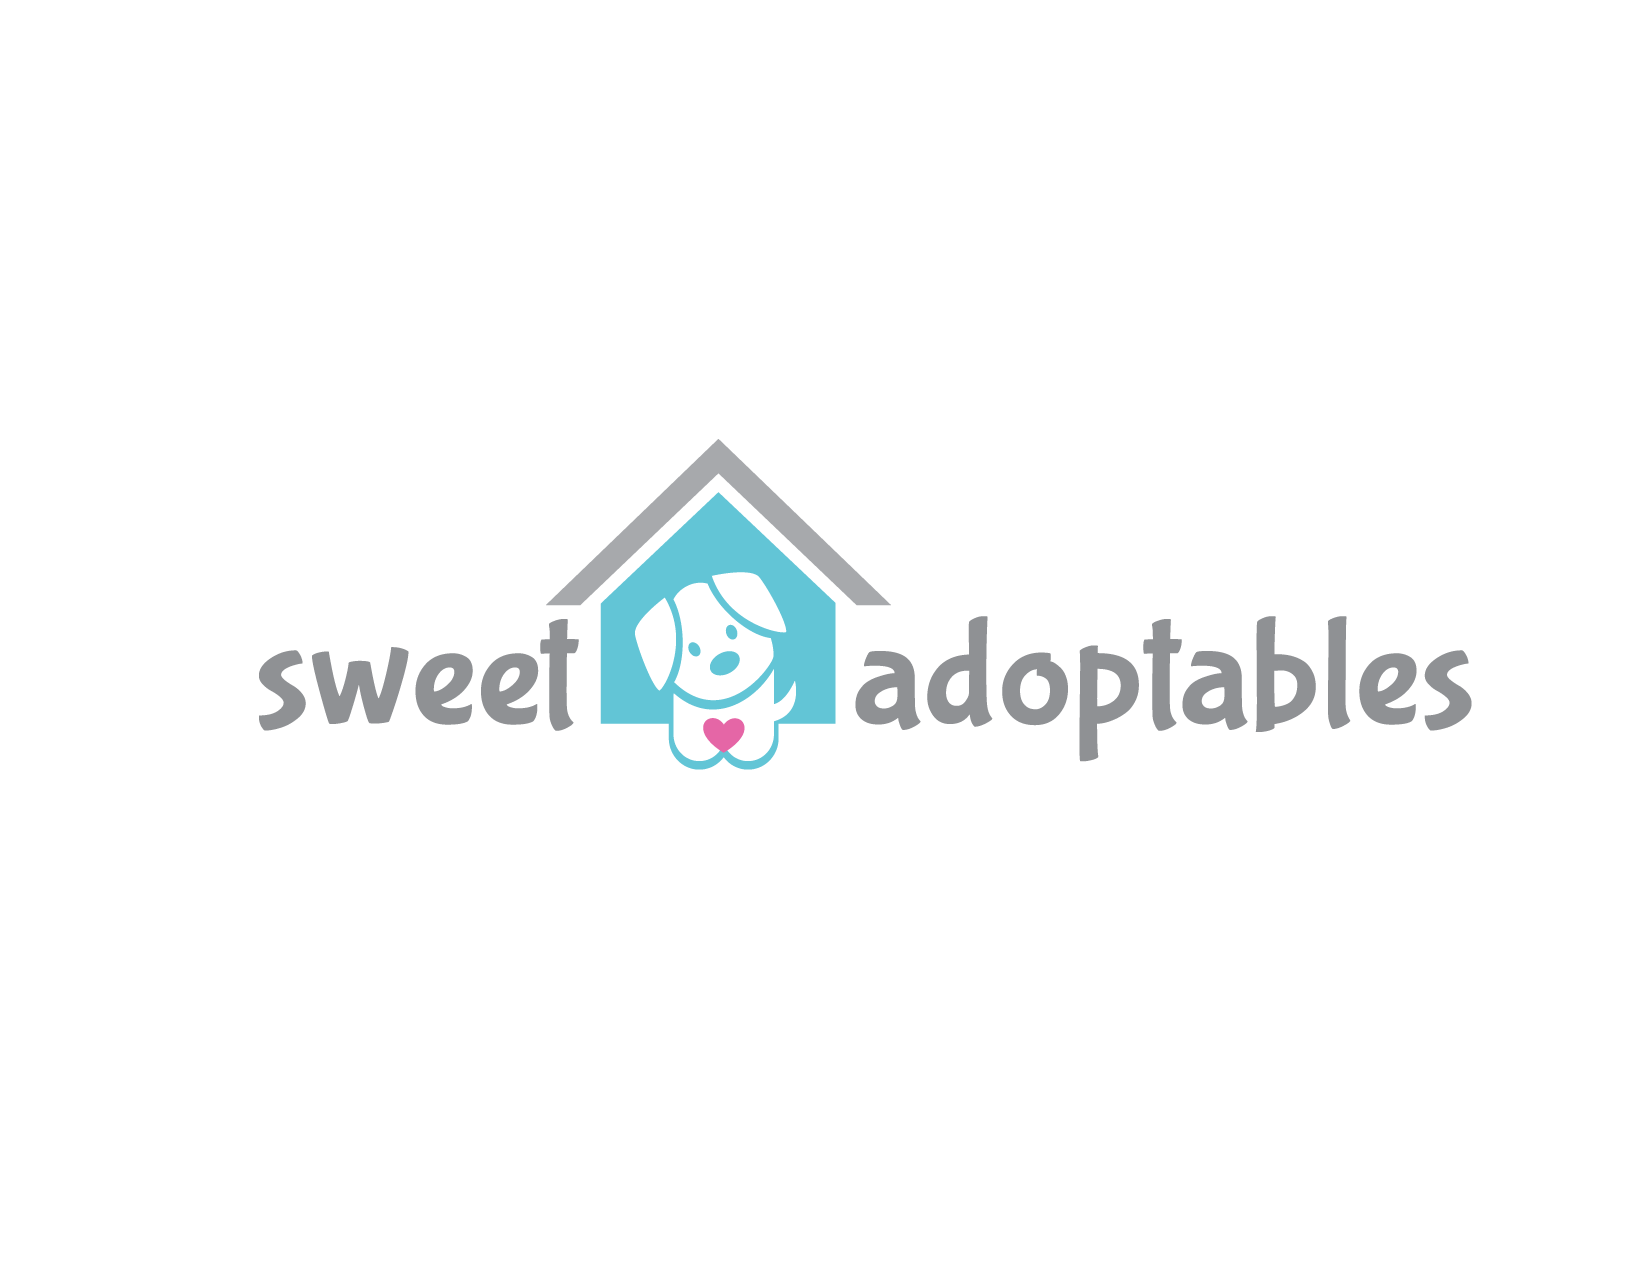 Sweet Adoptables